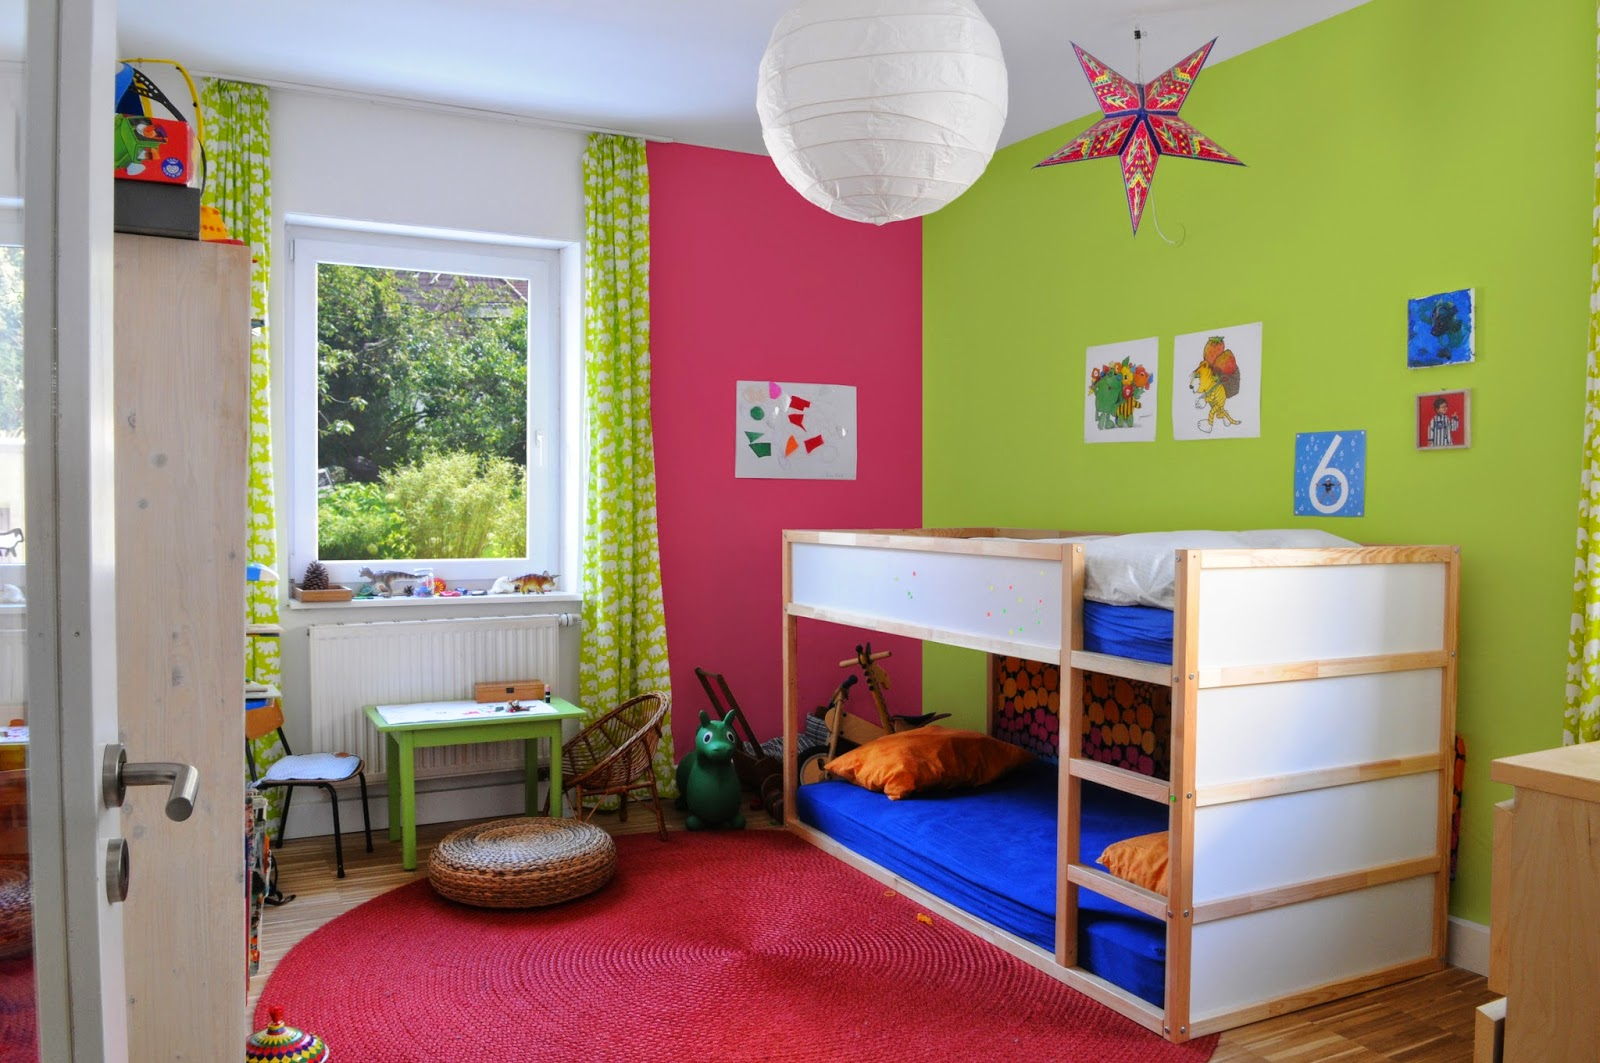 Ideas para pintar un dormitorio infantil ideas para decorar dormitorios - Ideas habitacion nino ...